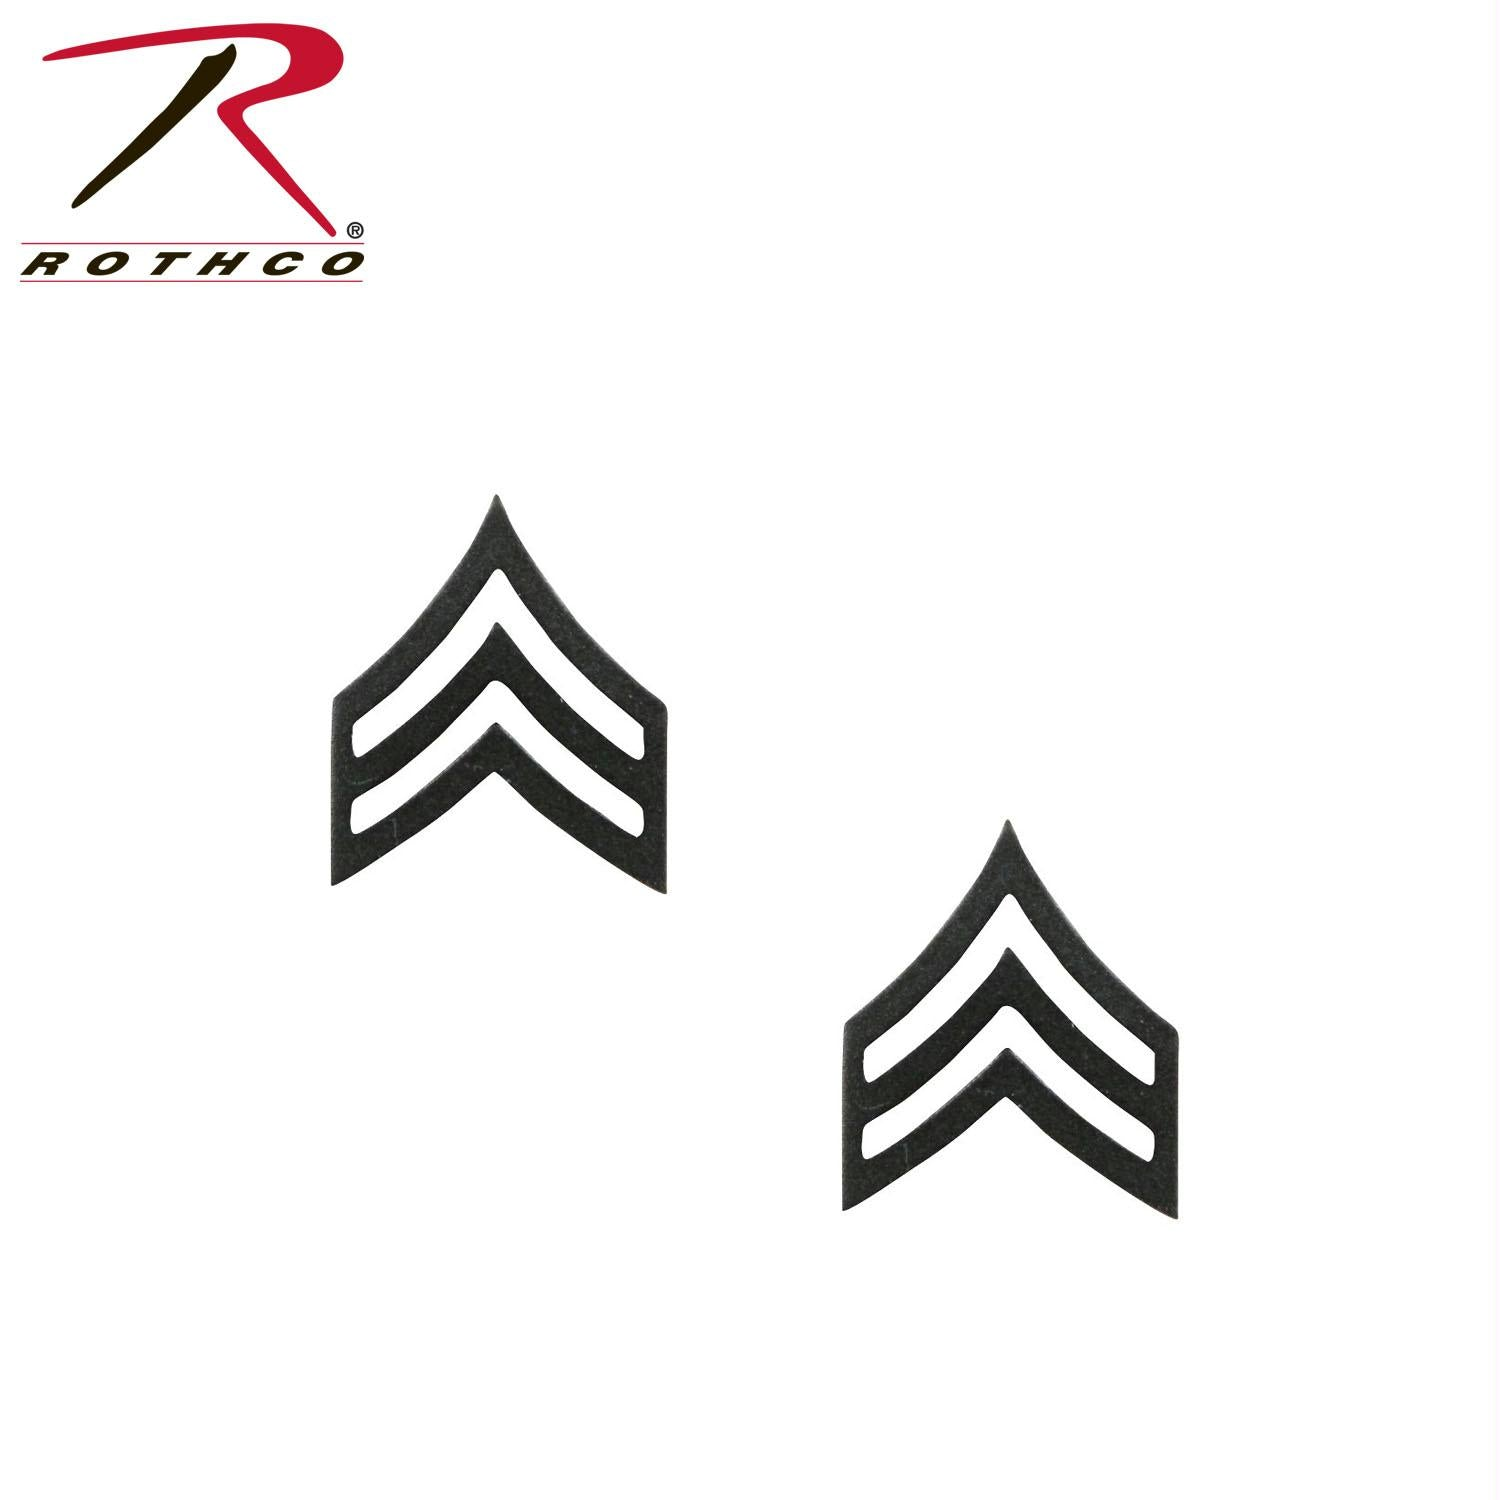 Rothco Sergeant Polished Insignia - Subdued